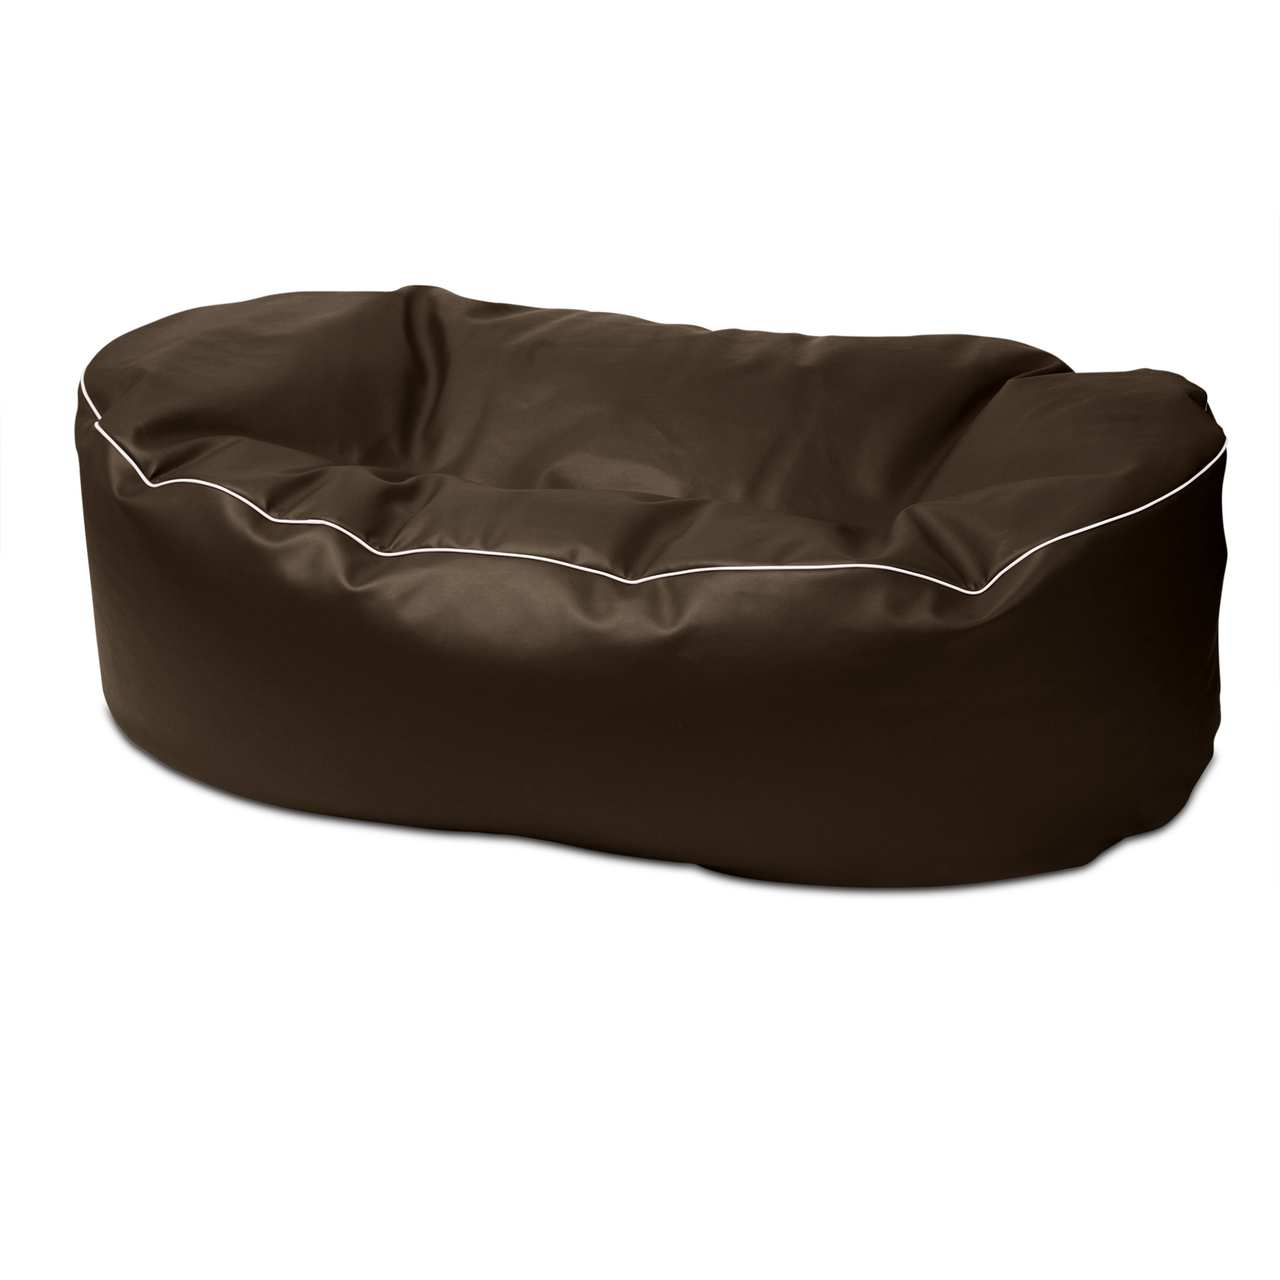 Retro 2m Couch in chocolate